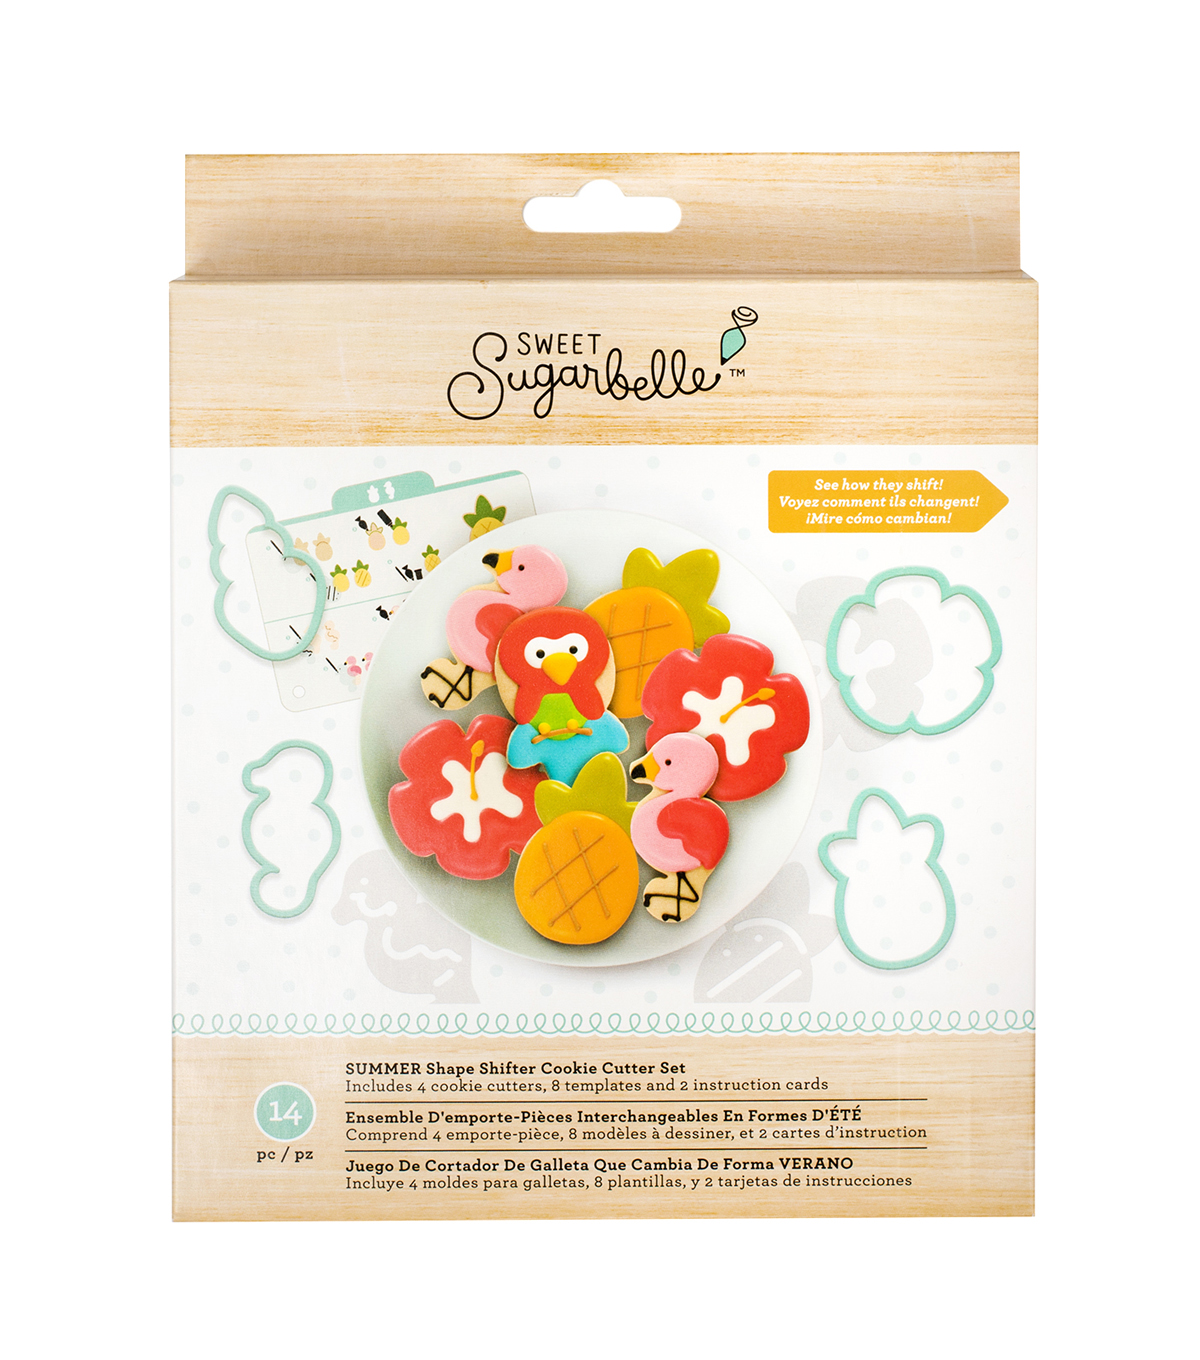 Sweet Sugarbelle Summer Shape Shifter Cookie Cutter Set